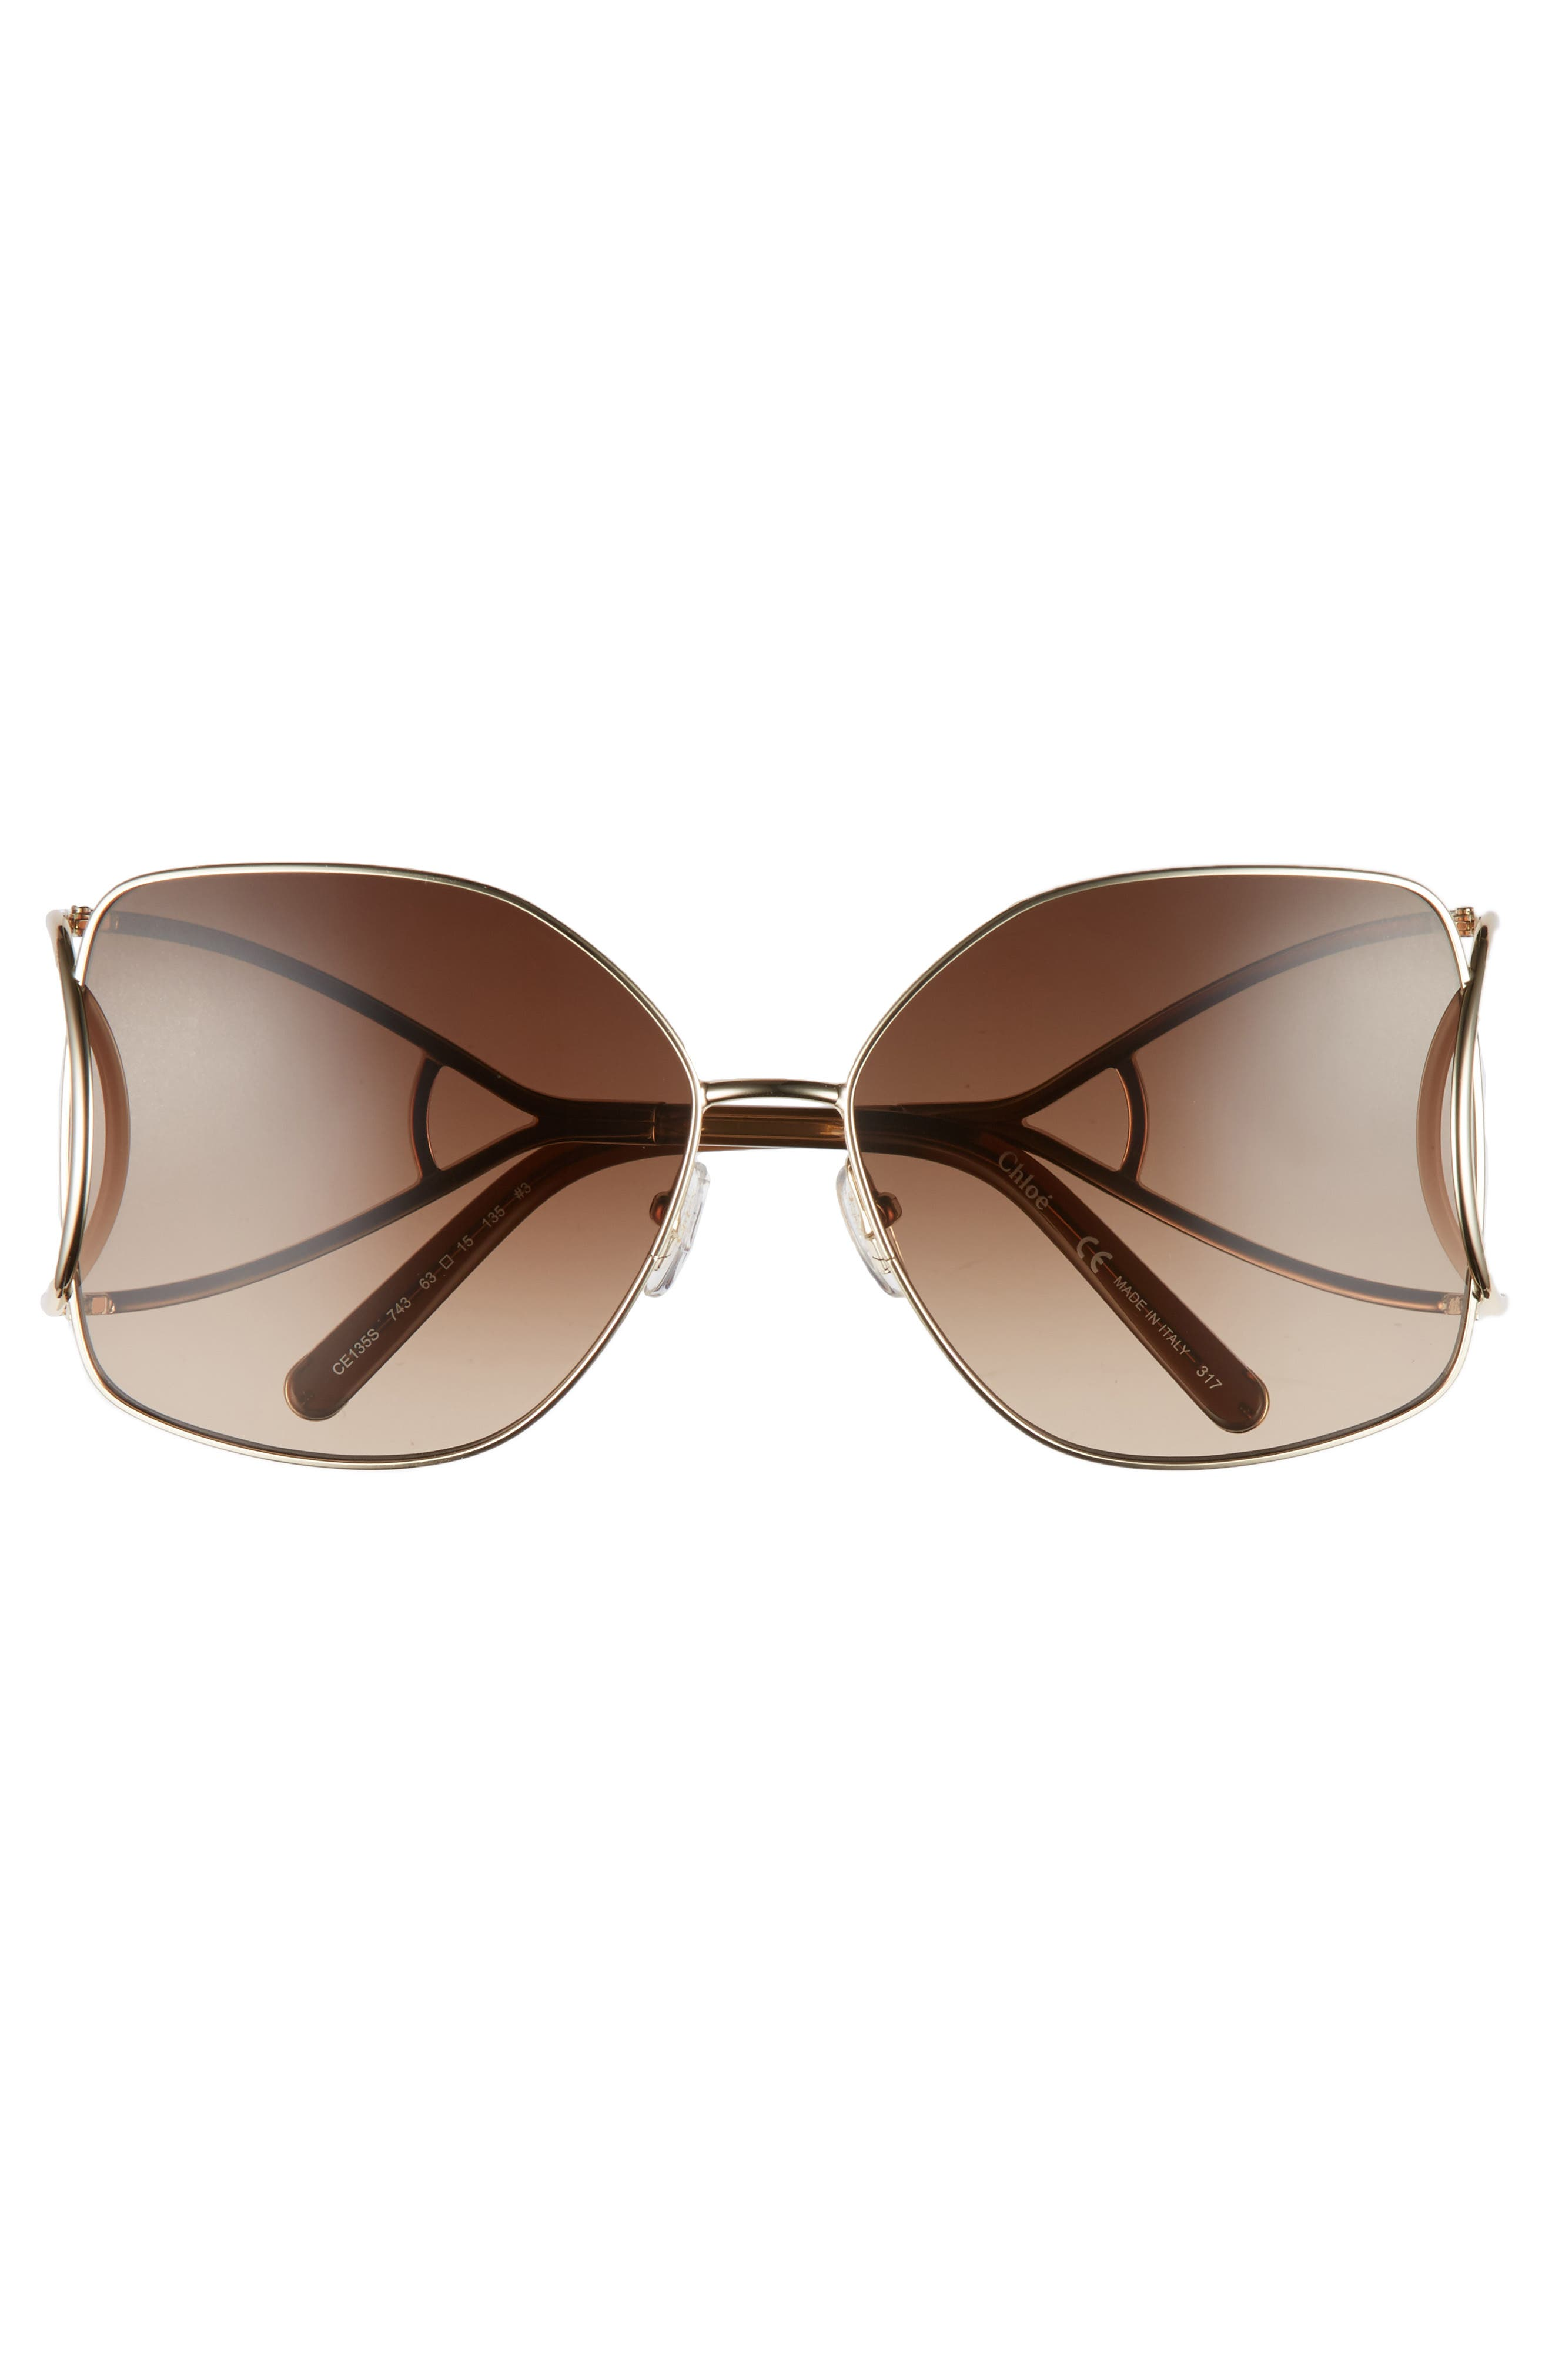 63mm Wrapover Frame Sunglasses,                             Alternate thumbnail 3, color,                             Gold/ Brown